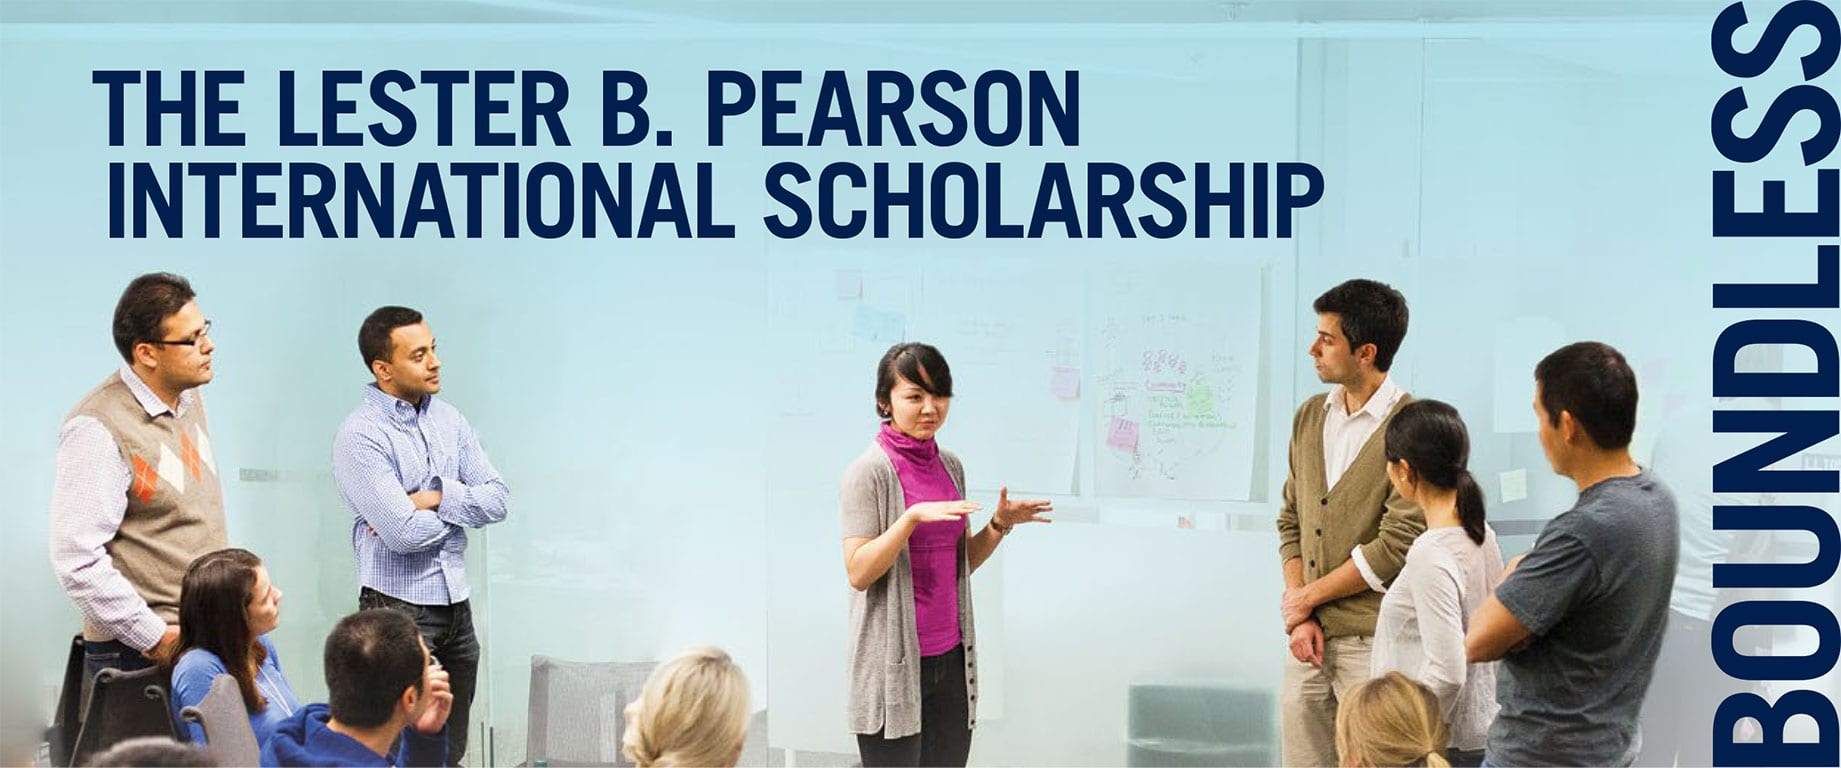 Lester B. Pearson International Scholarship Program 2019/2020 for study at the University of Toronto, Canada (Fully Funded)